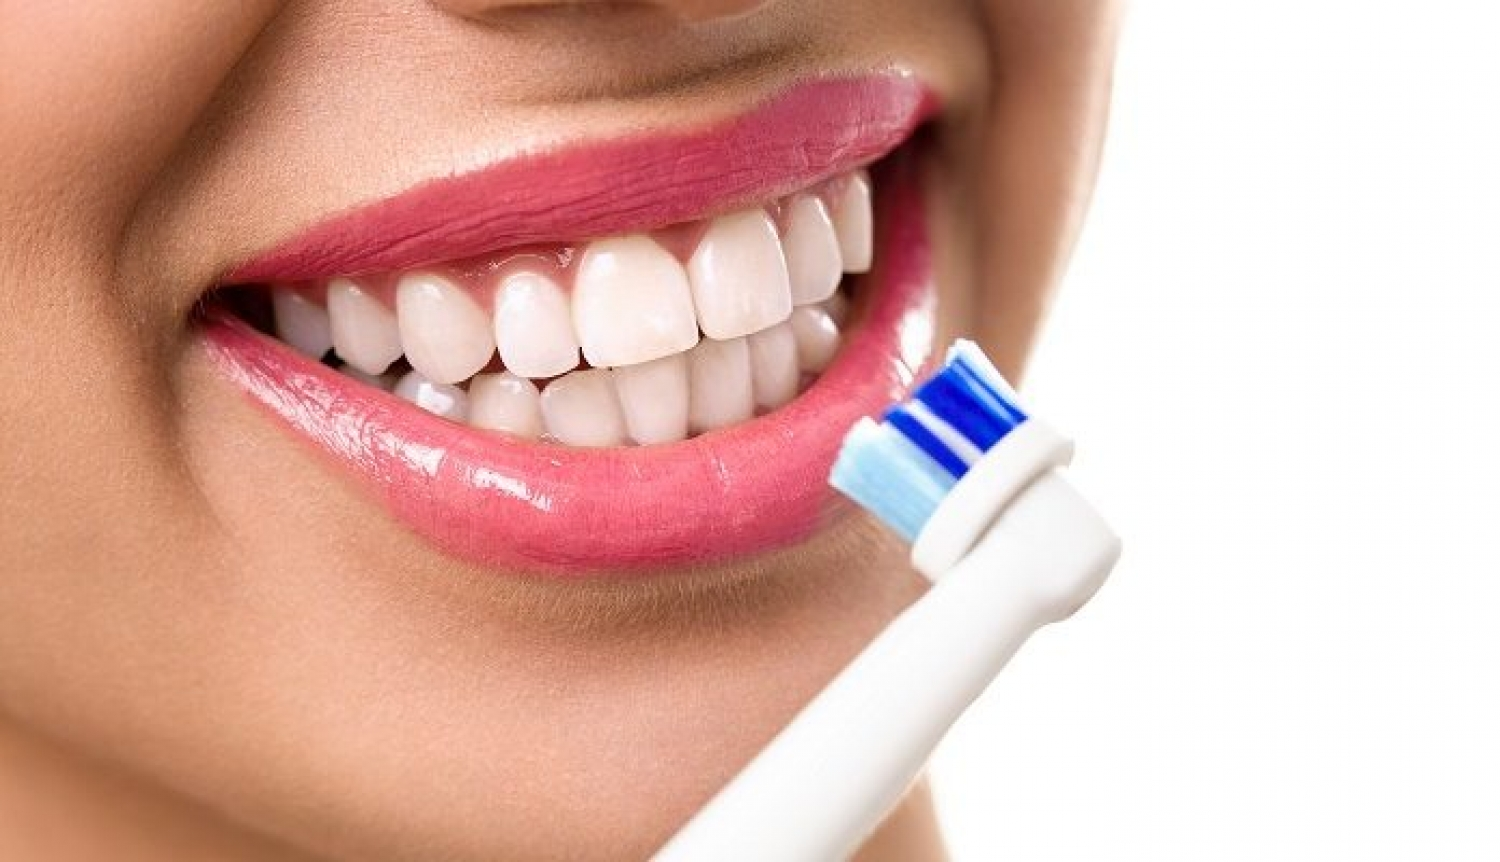 Top tips on brushing your teeth